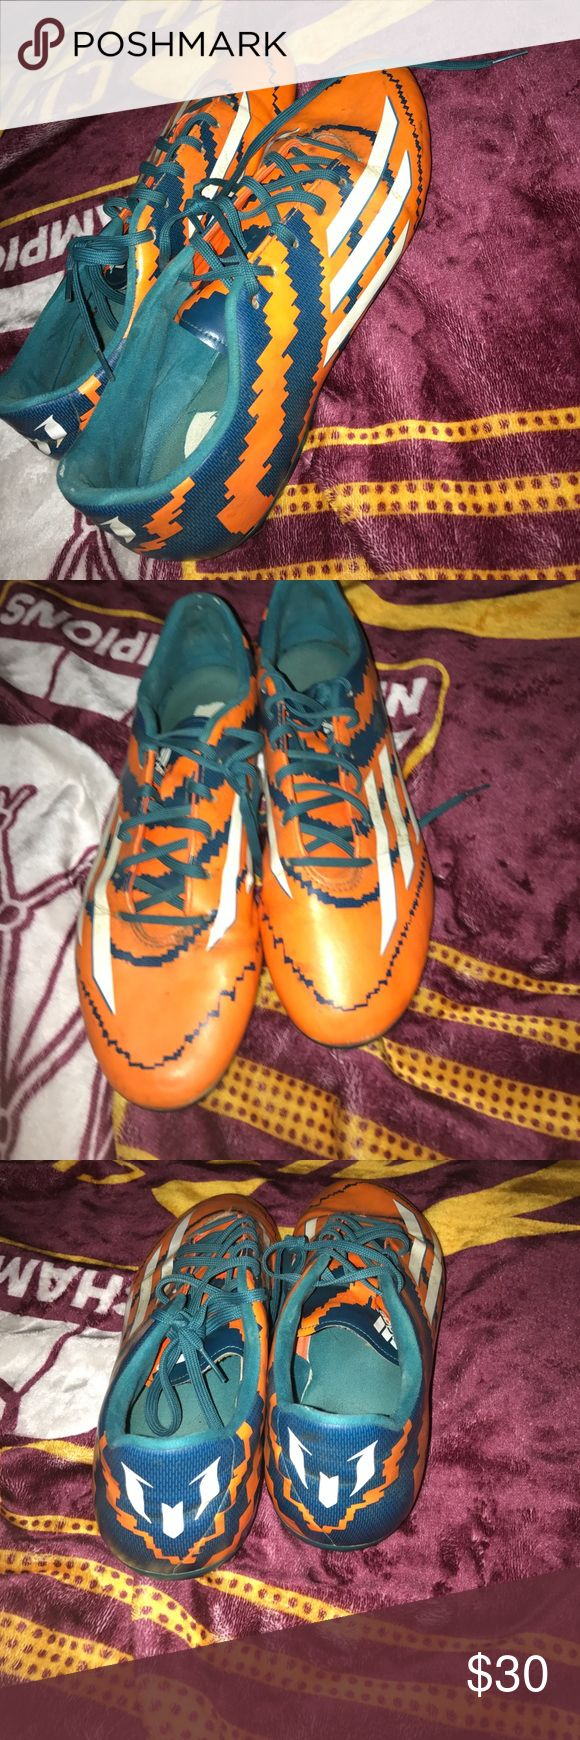 Adidas Messi soccer cleats Good condition 7/10 with some wear on the insole adidas Shoes Athletic Shoes